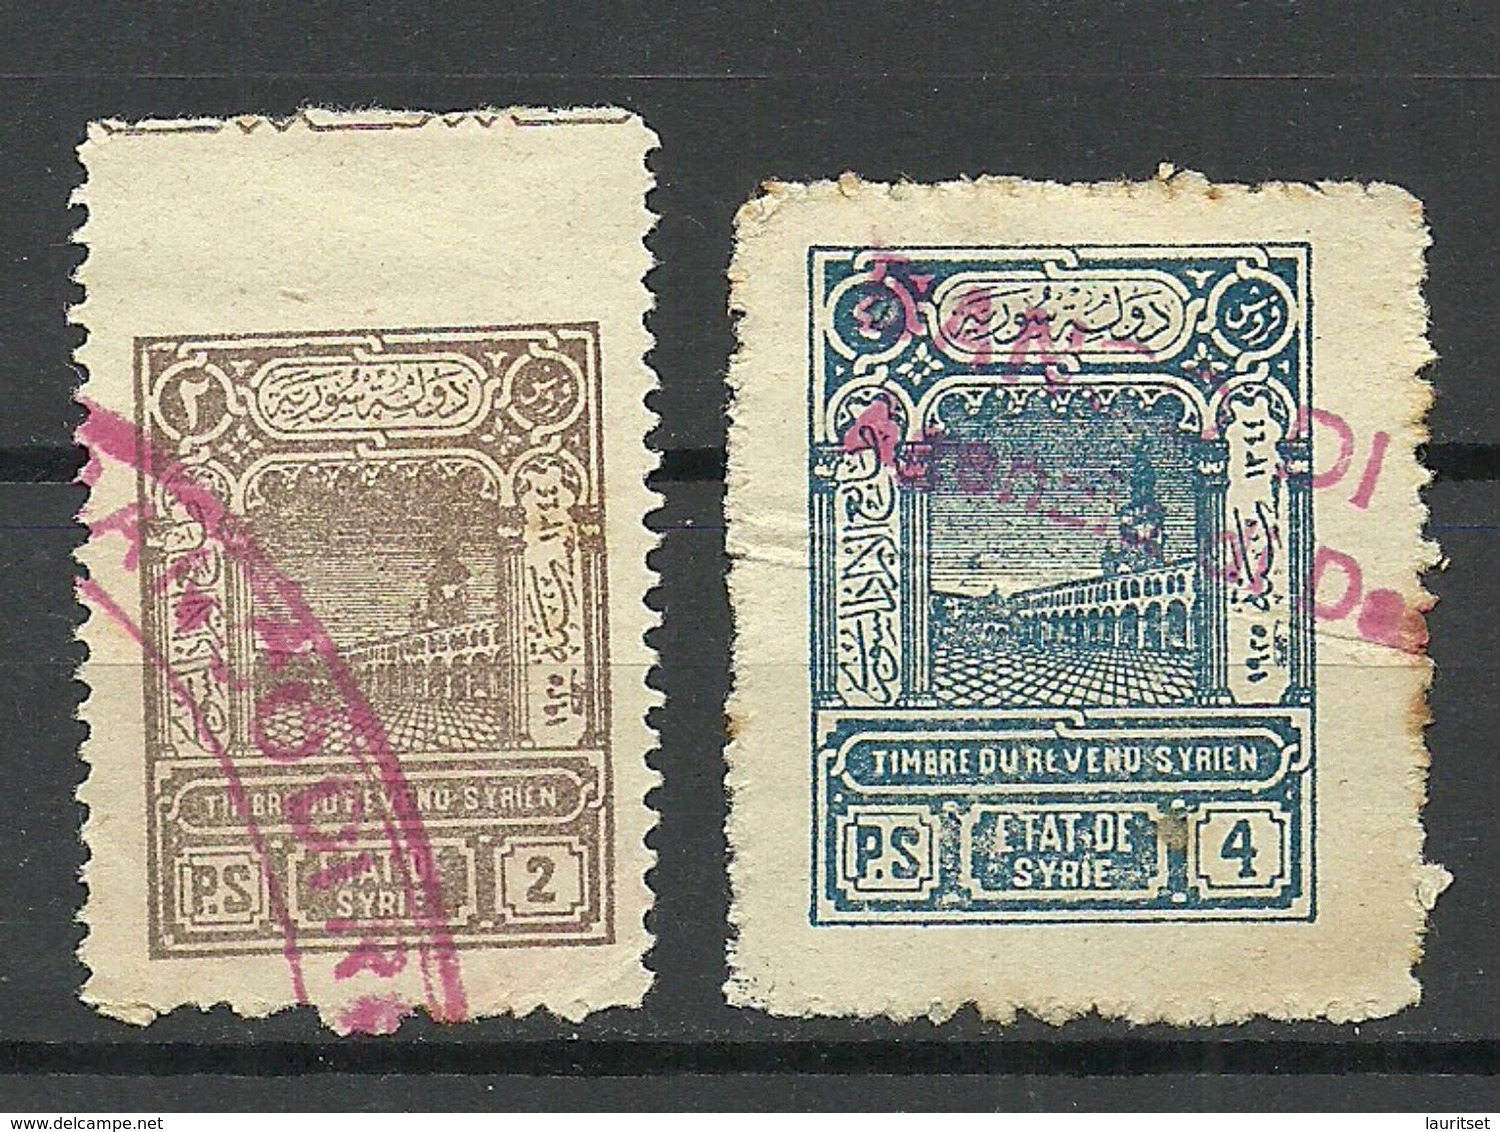 SYRIE 2 Old Fiscal Timbre Du Revenu 2 & 4 P.S. O - Syrien (1919-1945)